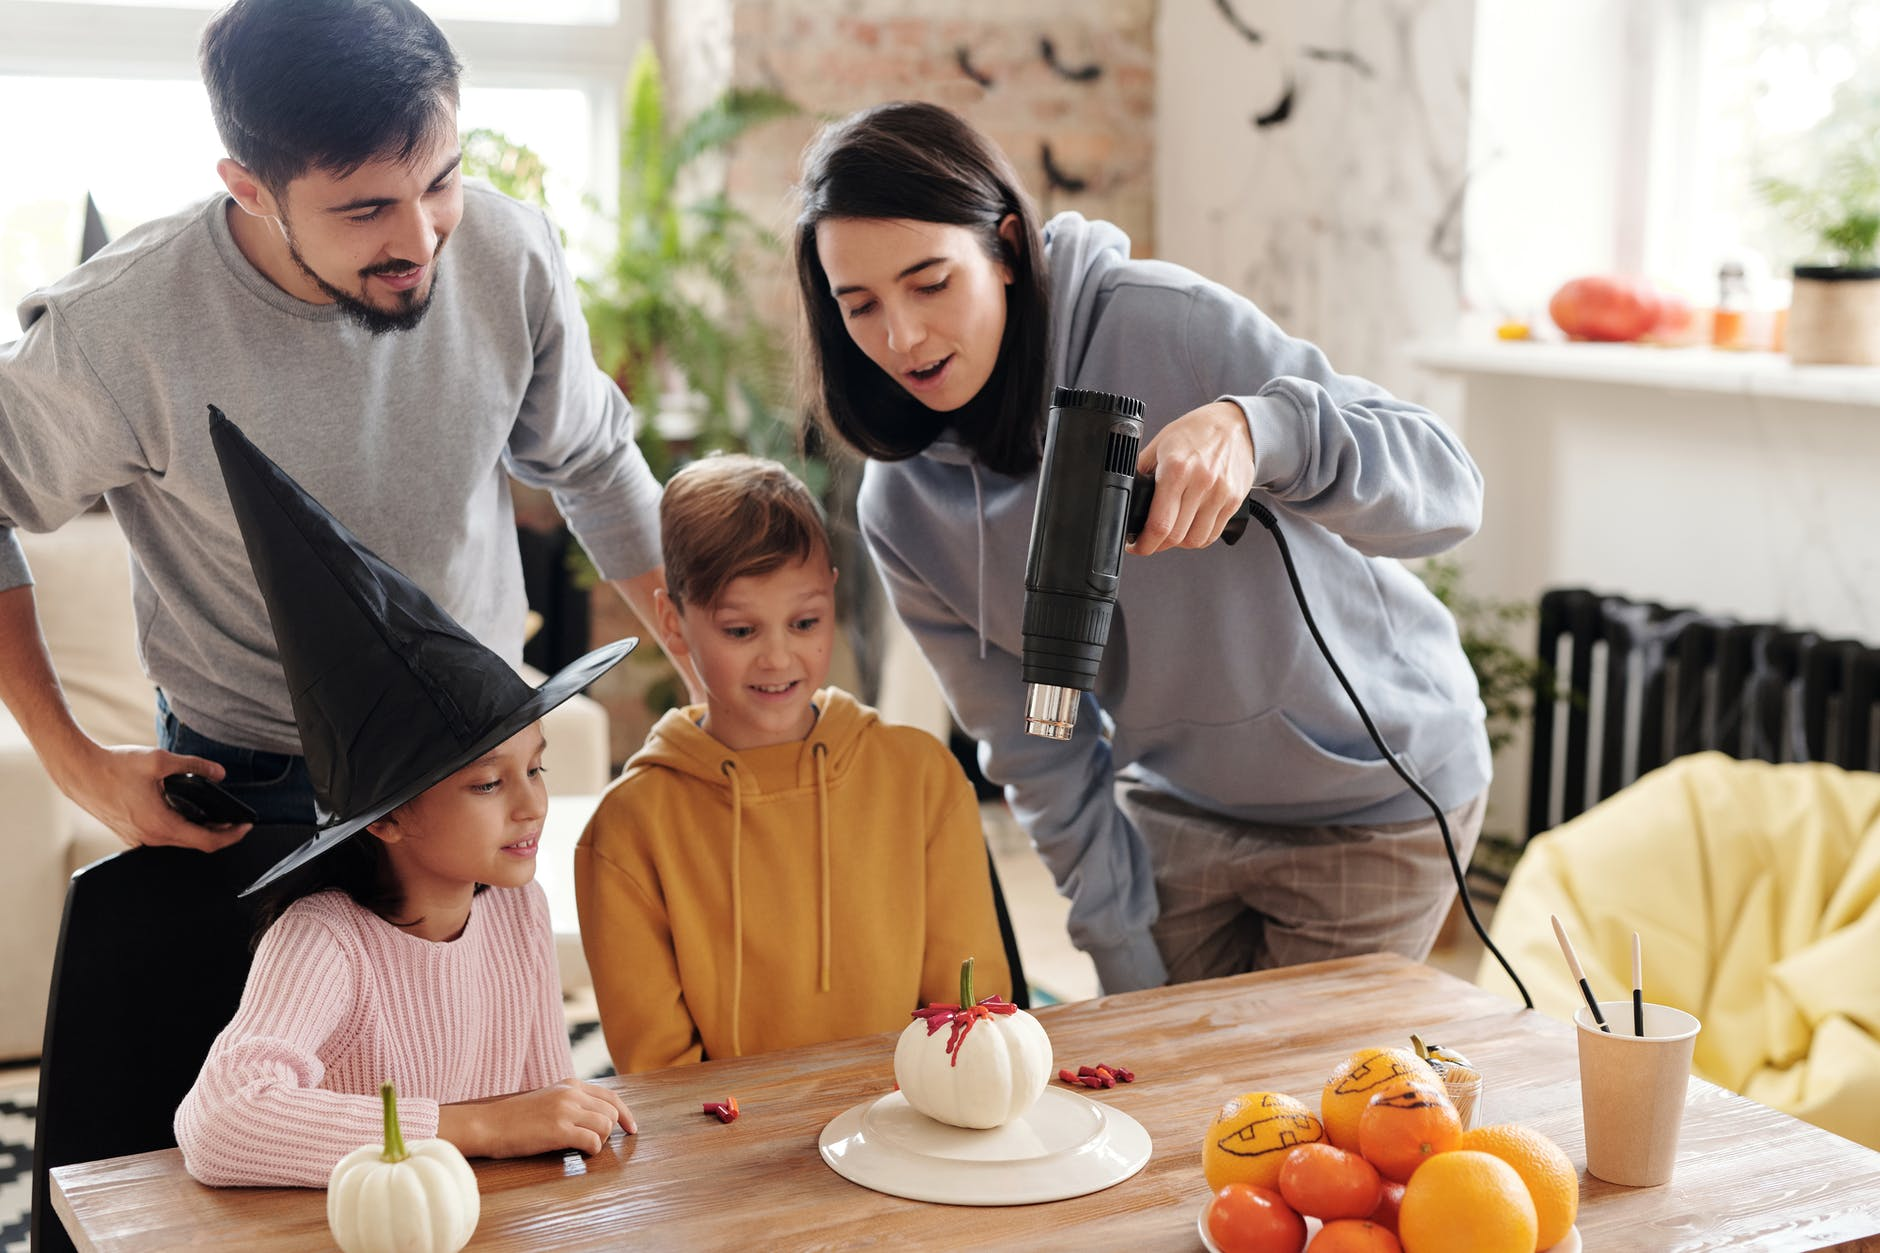 Five things single parent should consider before selecting choosing their next partner